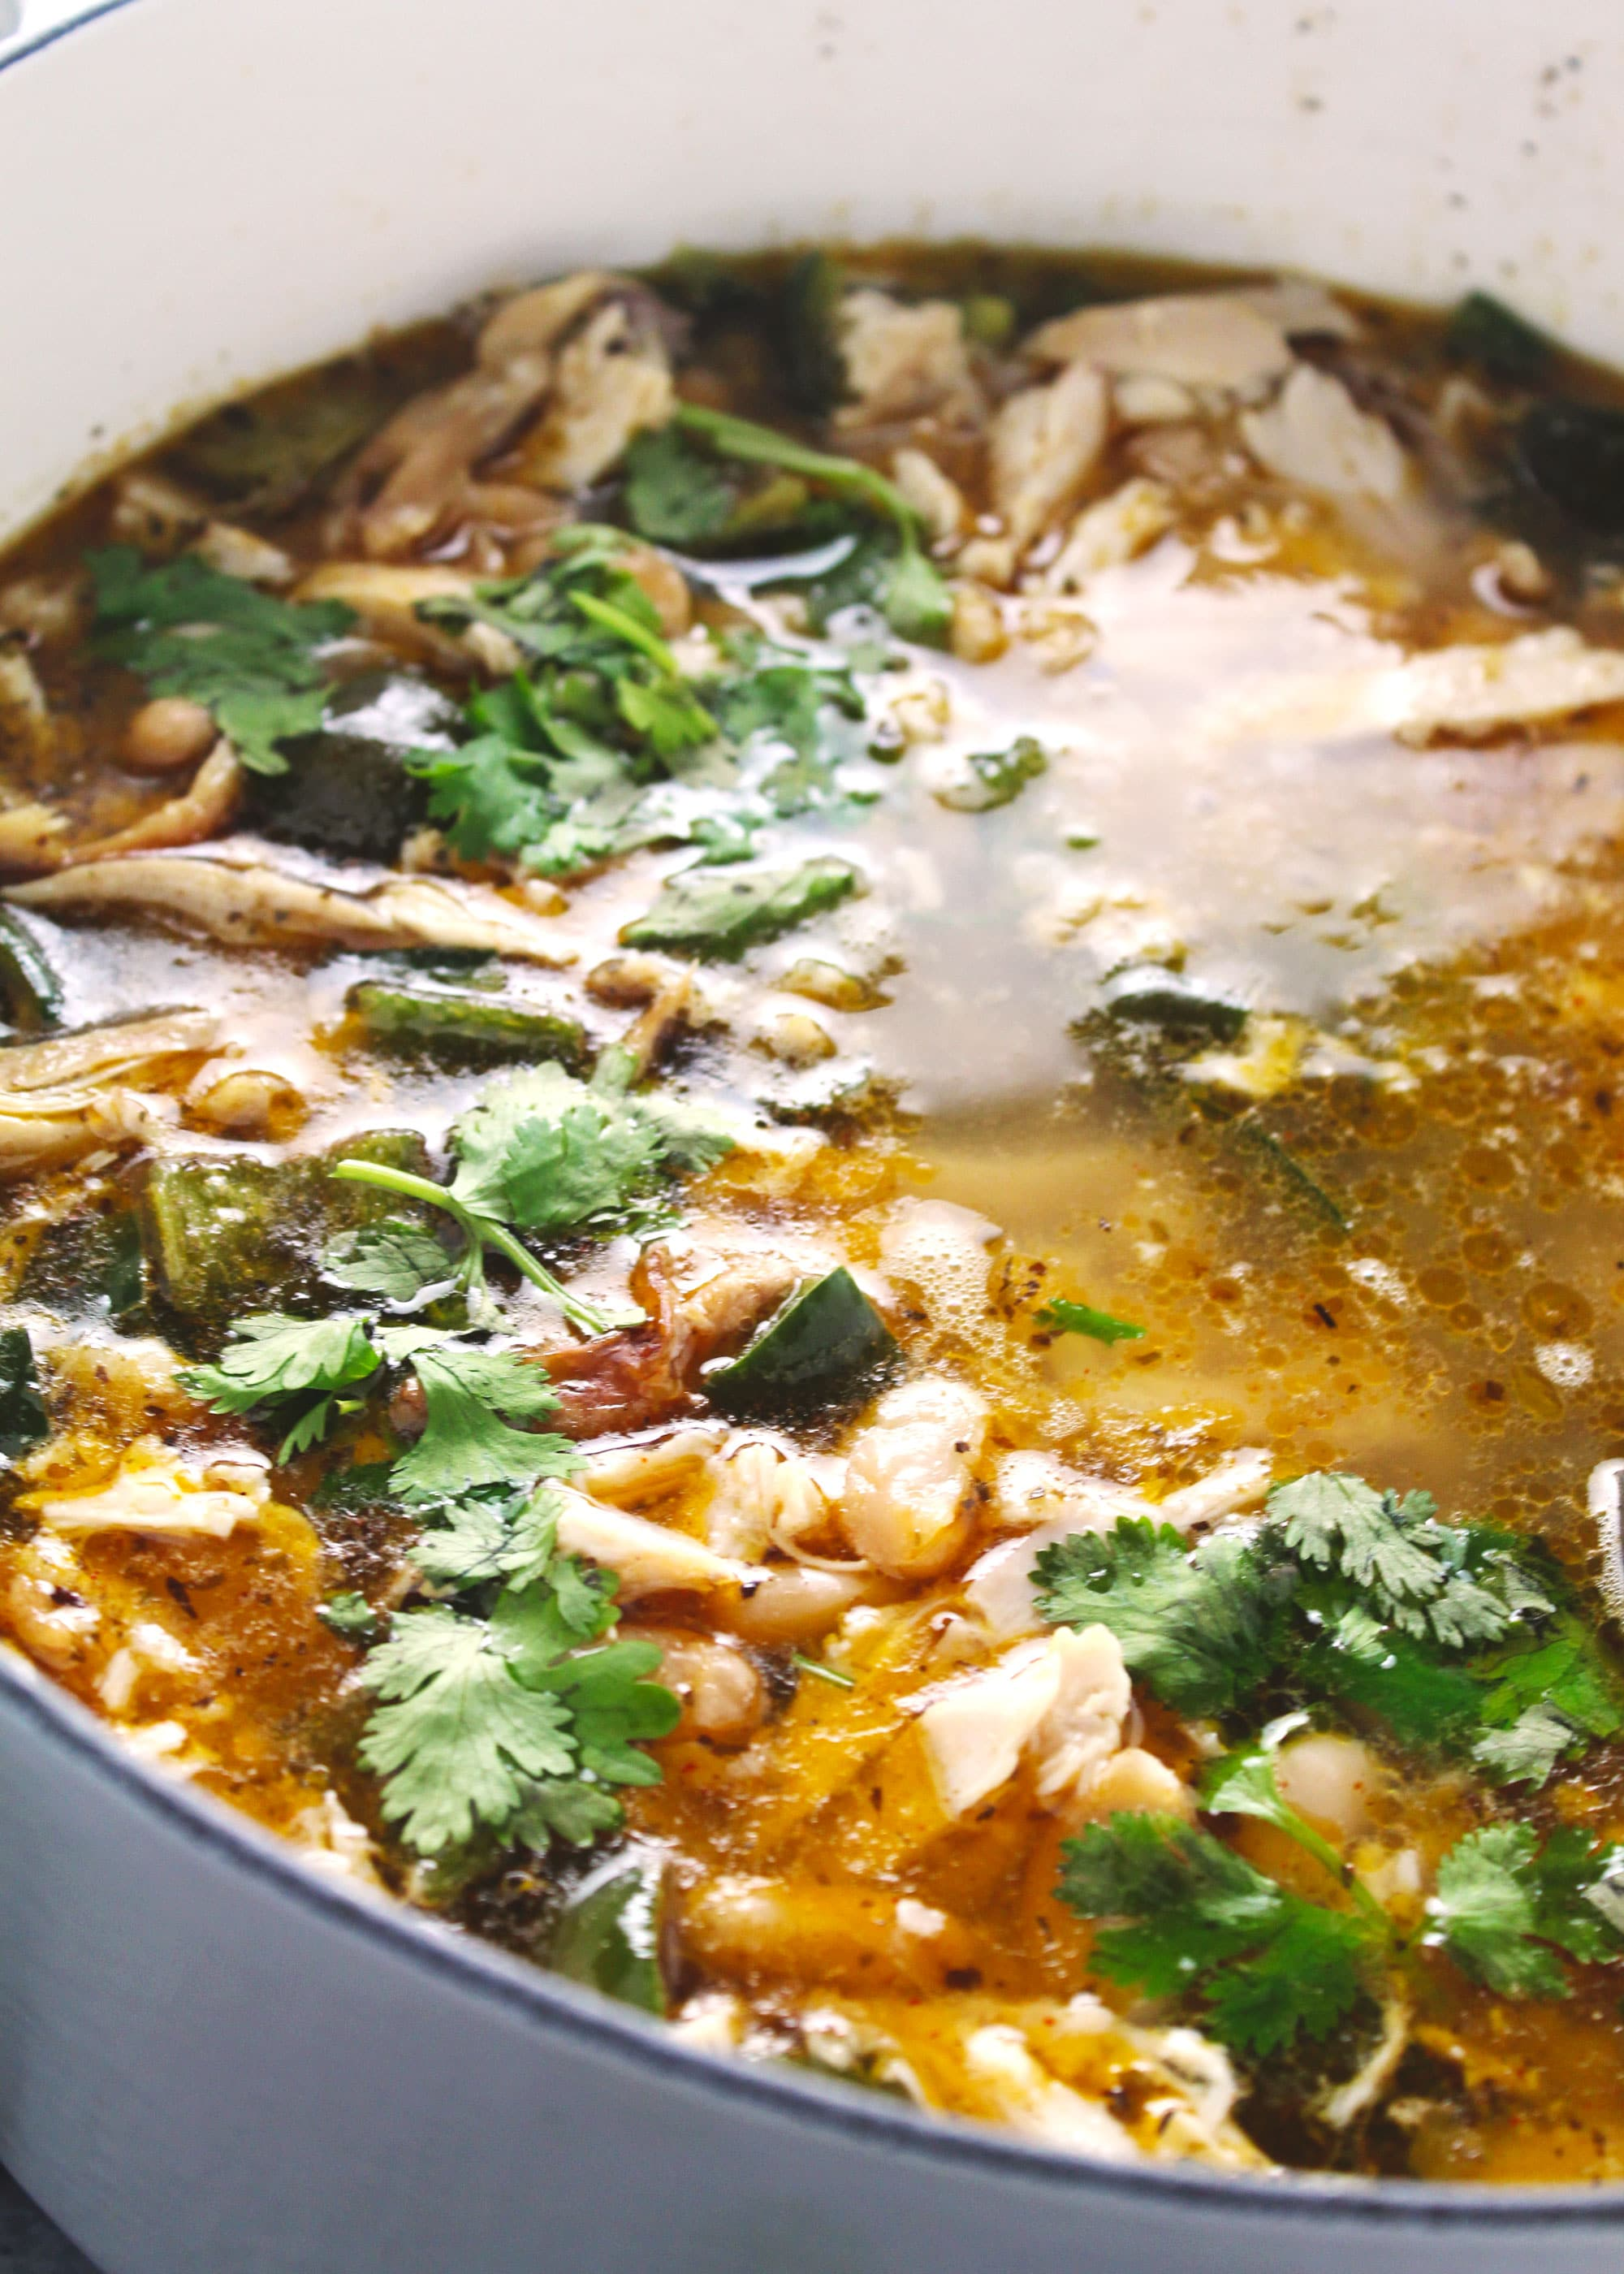 Chicken chili stew topped with fresh parsley in a large white pot.